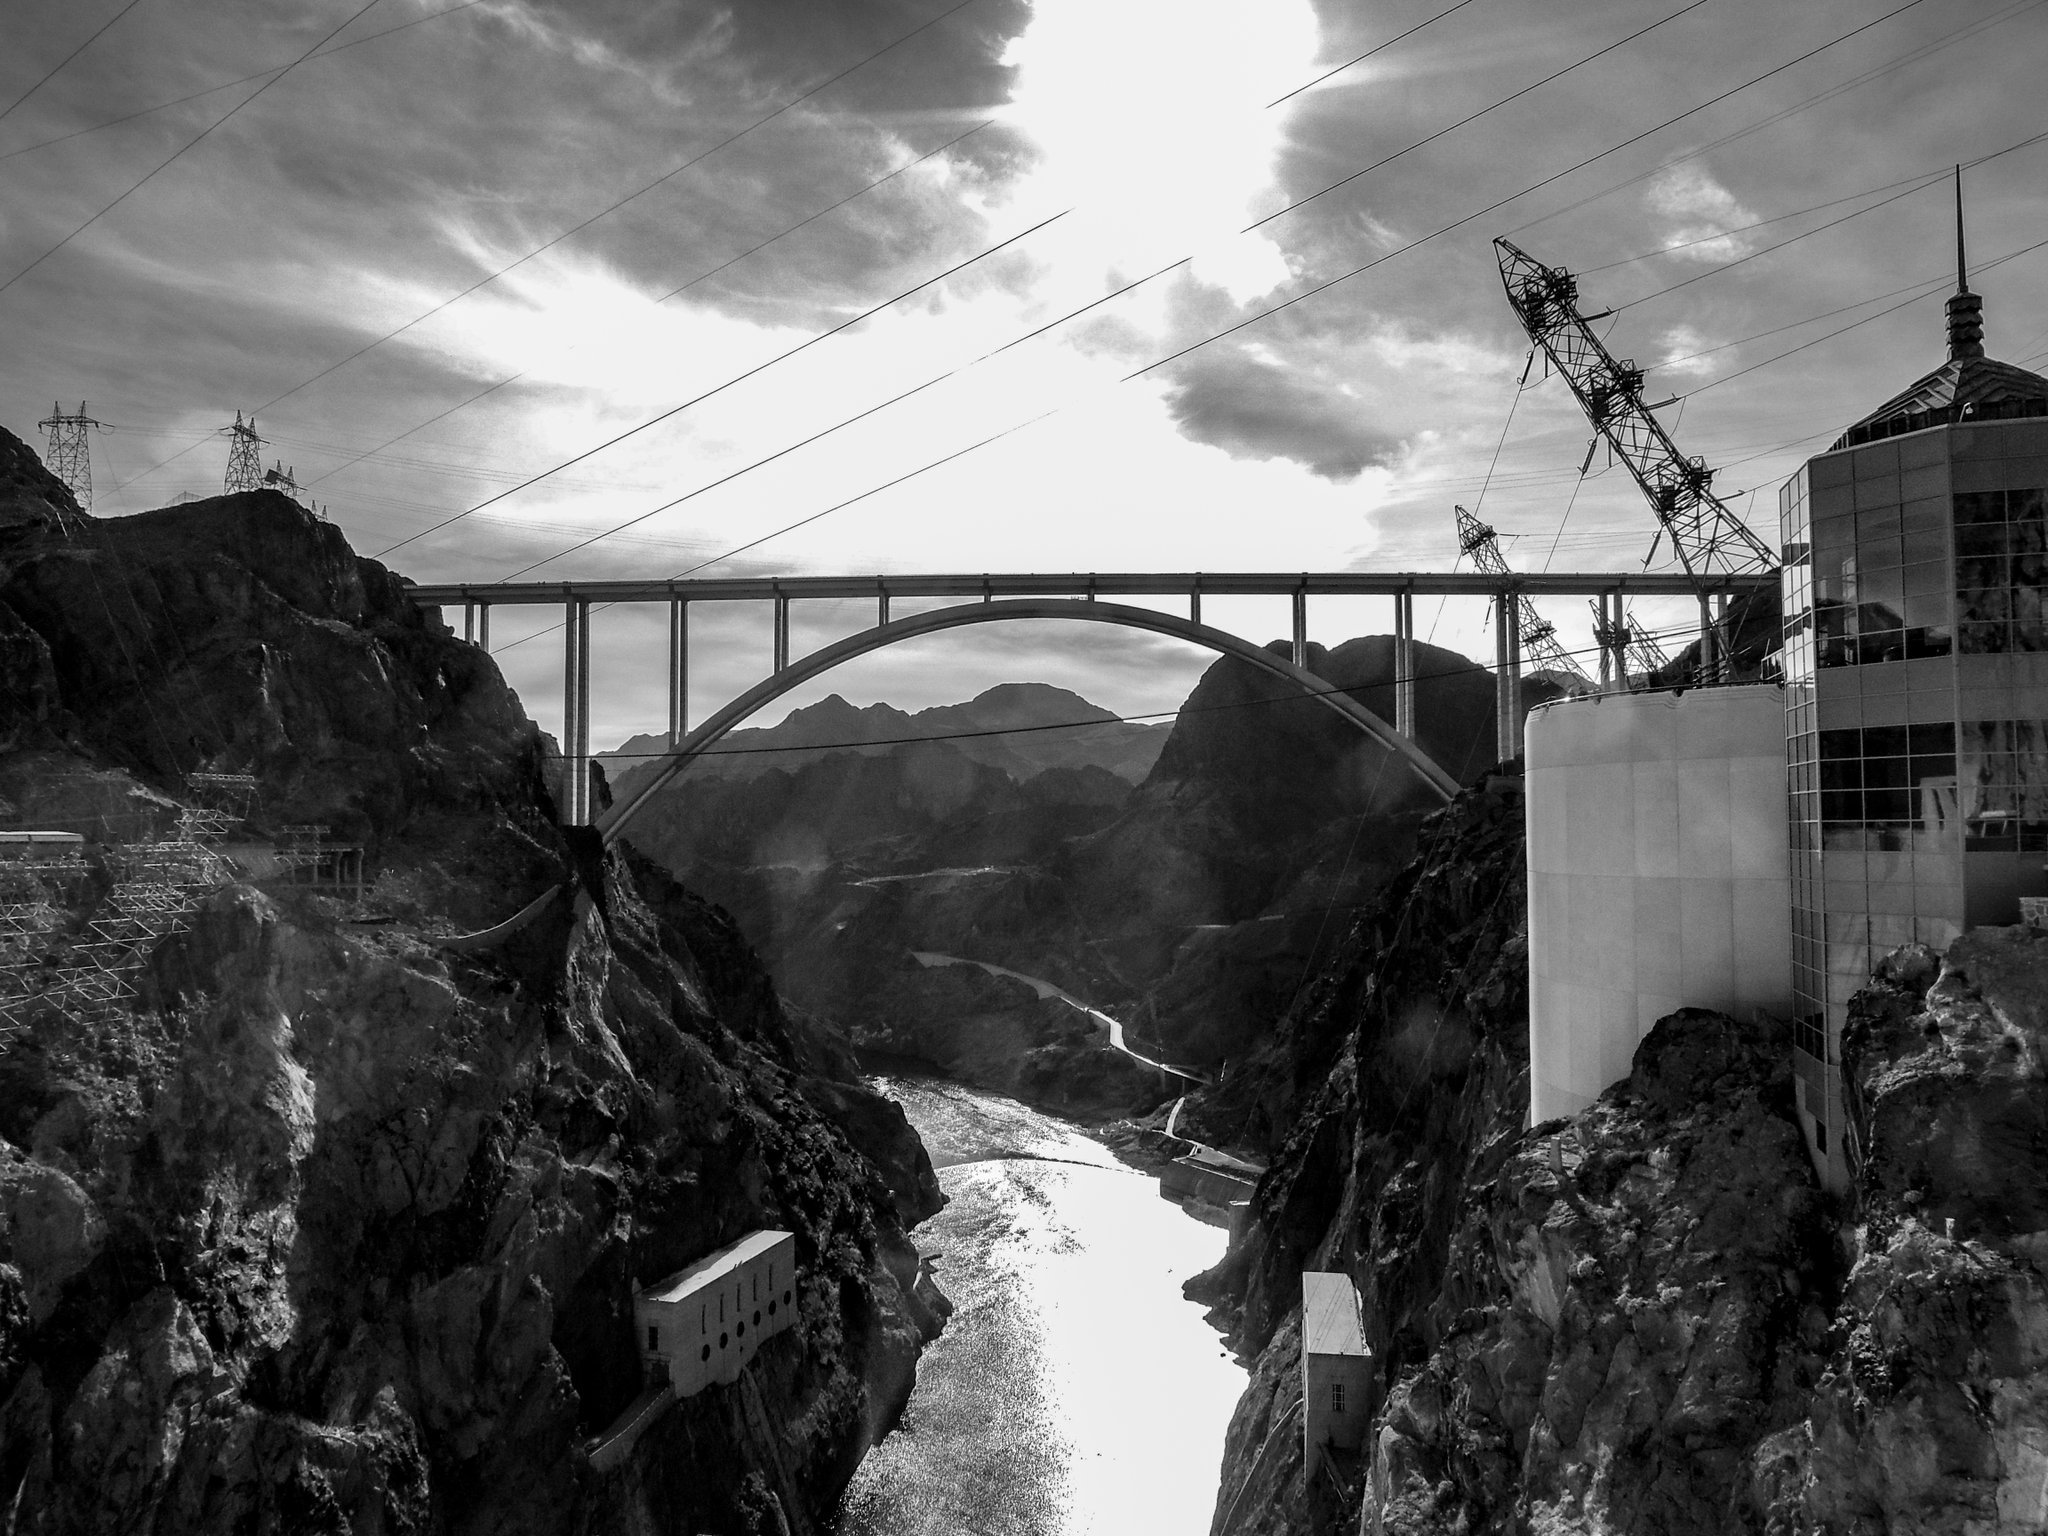 black_and_white_landscape_photography_16.jpg